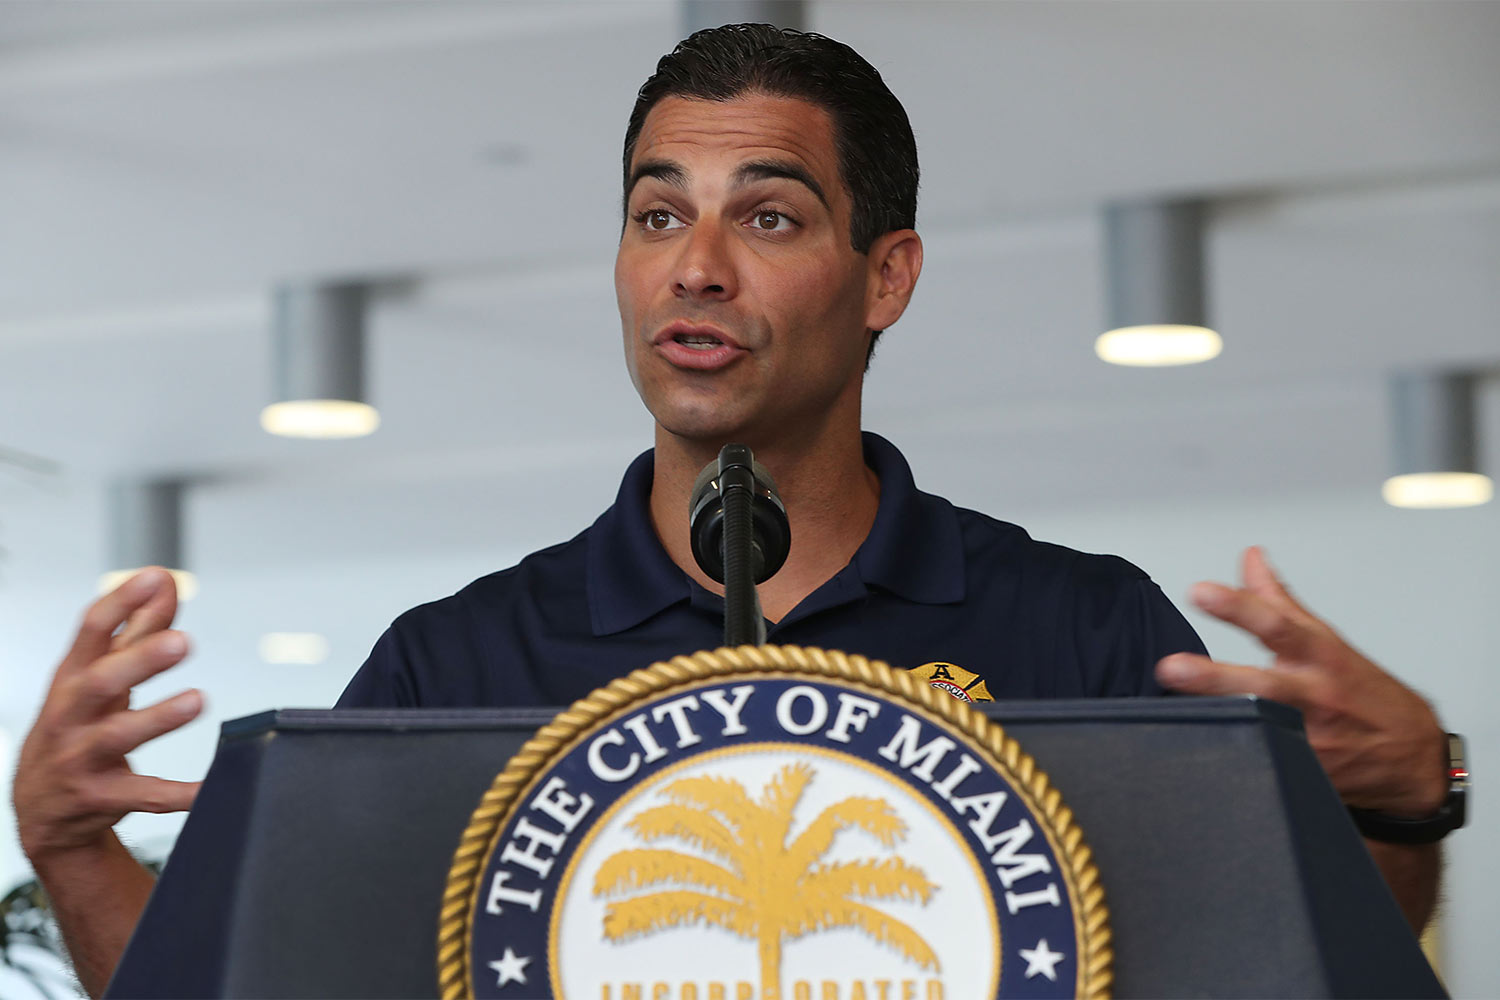 Miami Mayor And City Manager Hold Hurricane Season Kickoff Press Conference